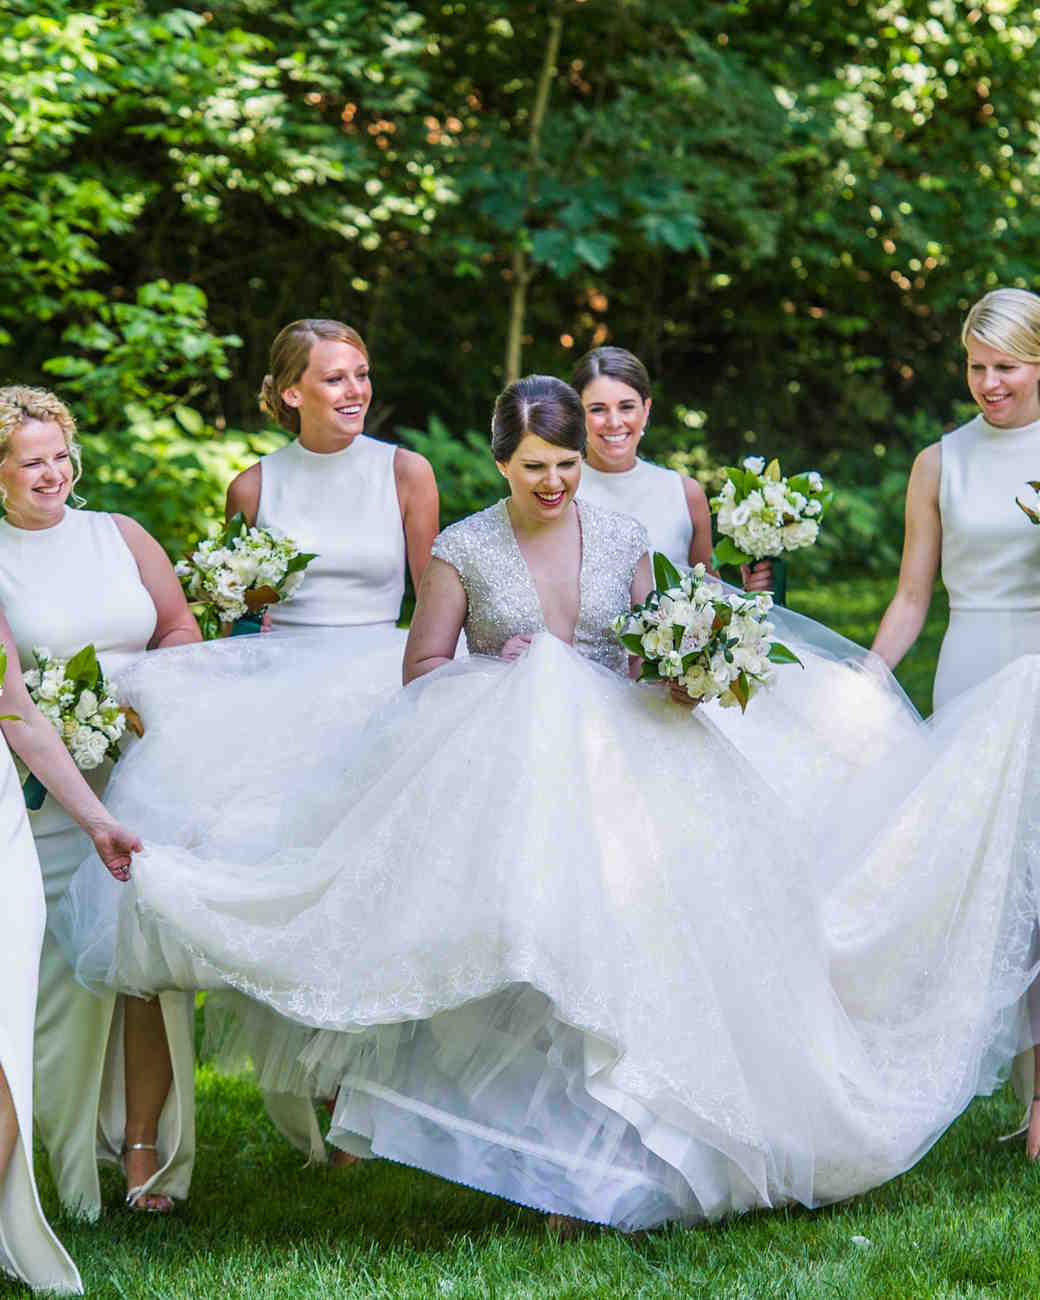 Ivory bridesmaids gowns